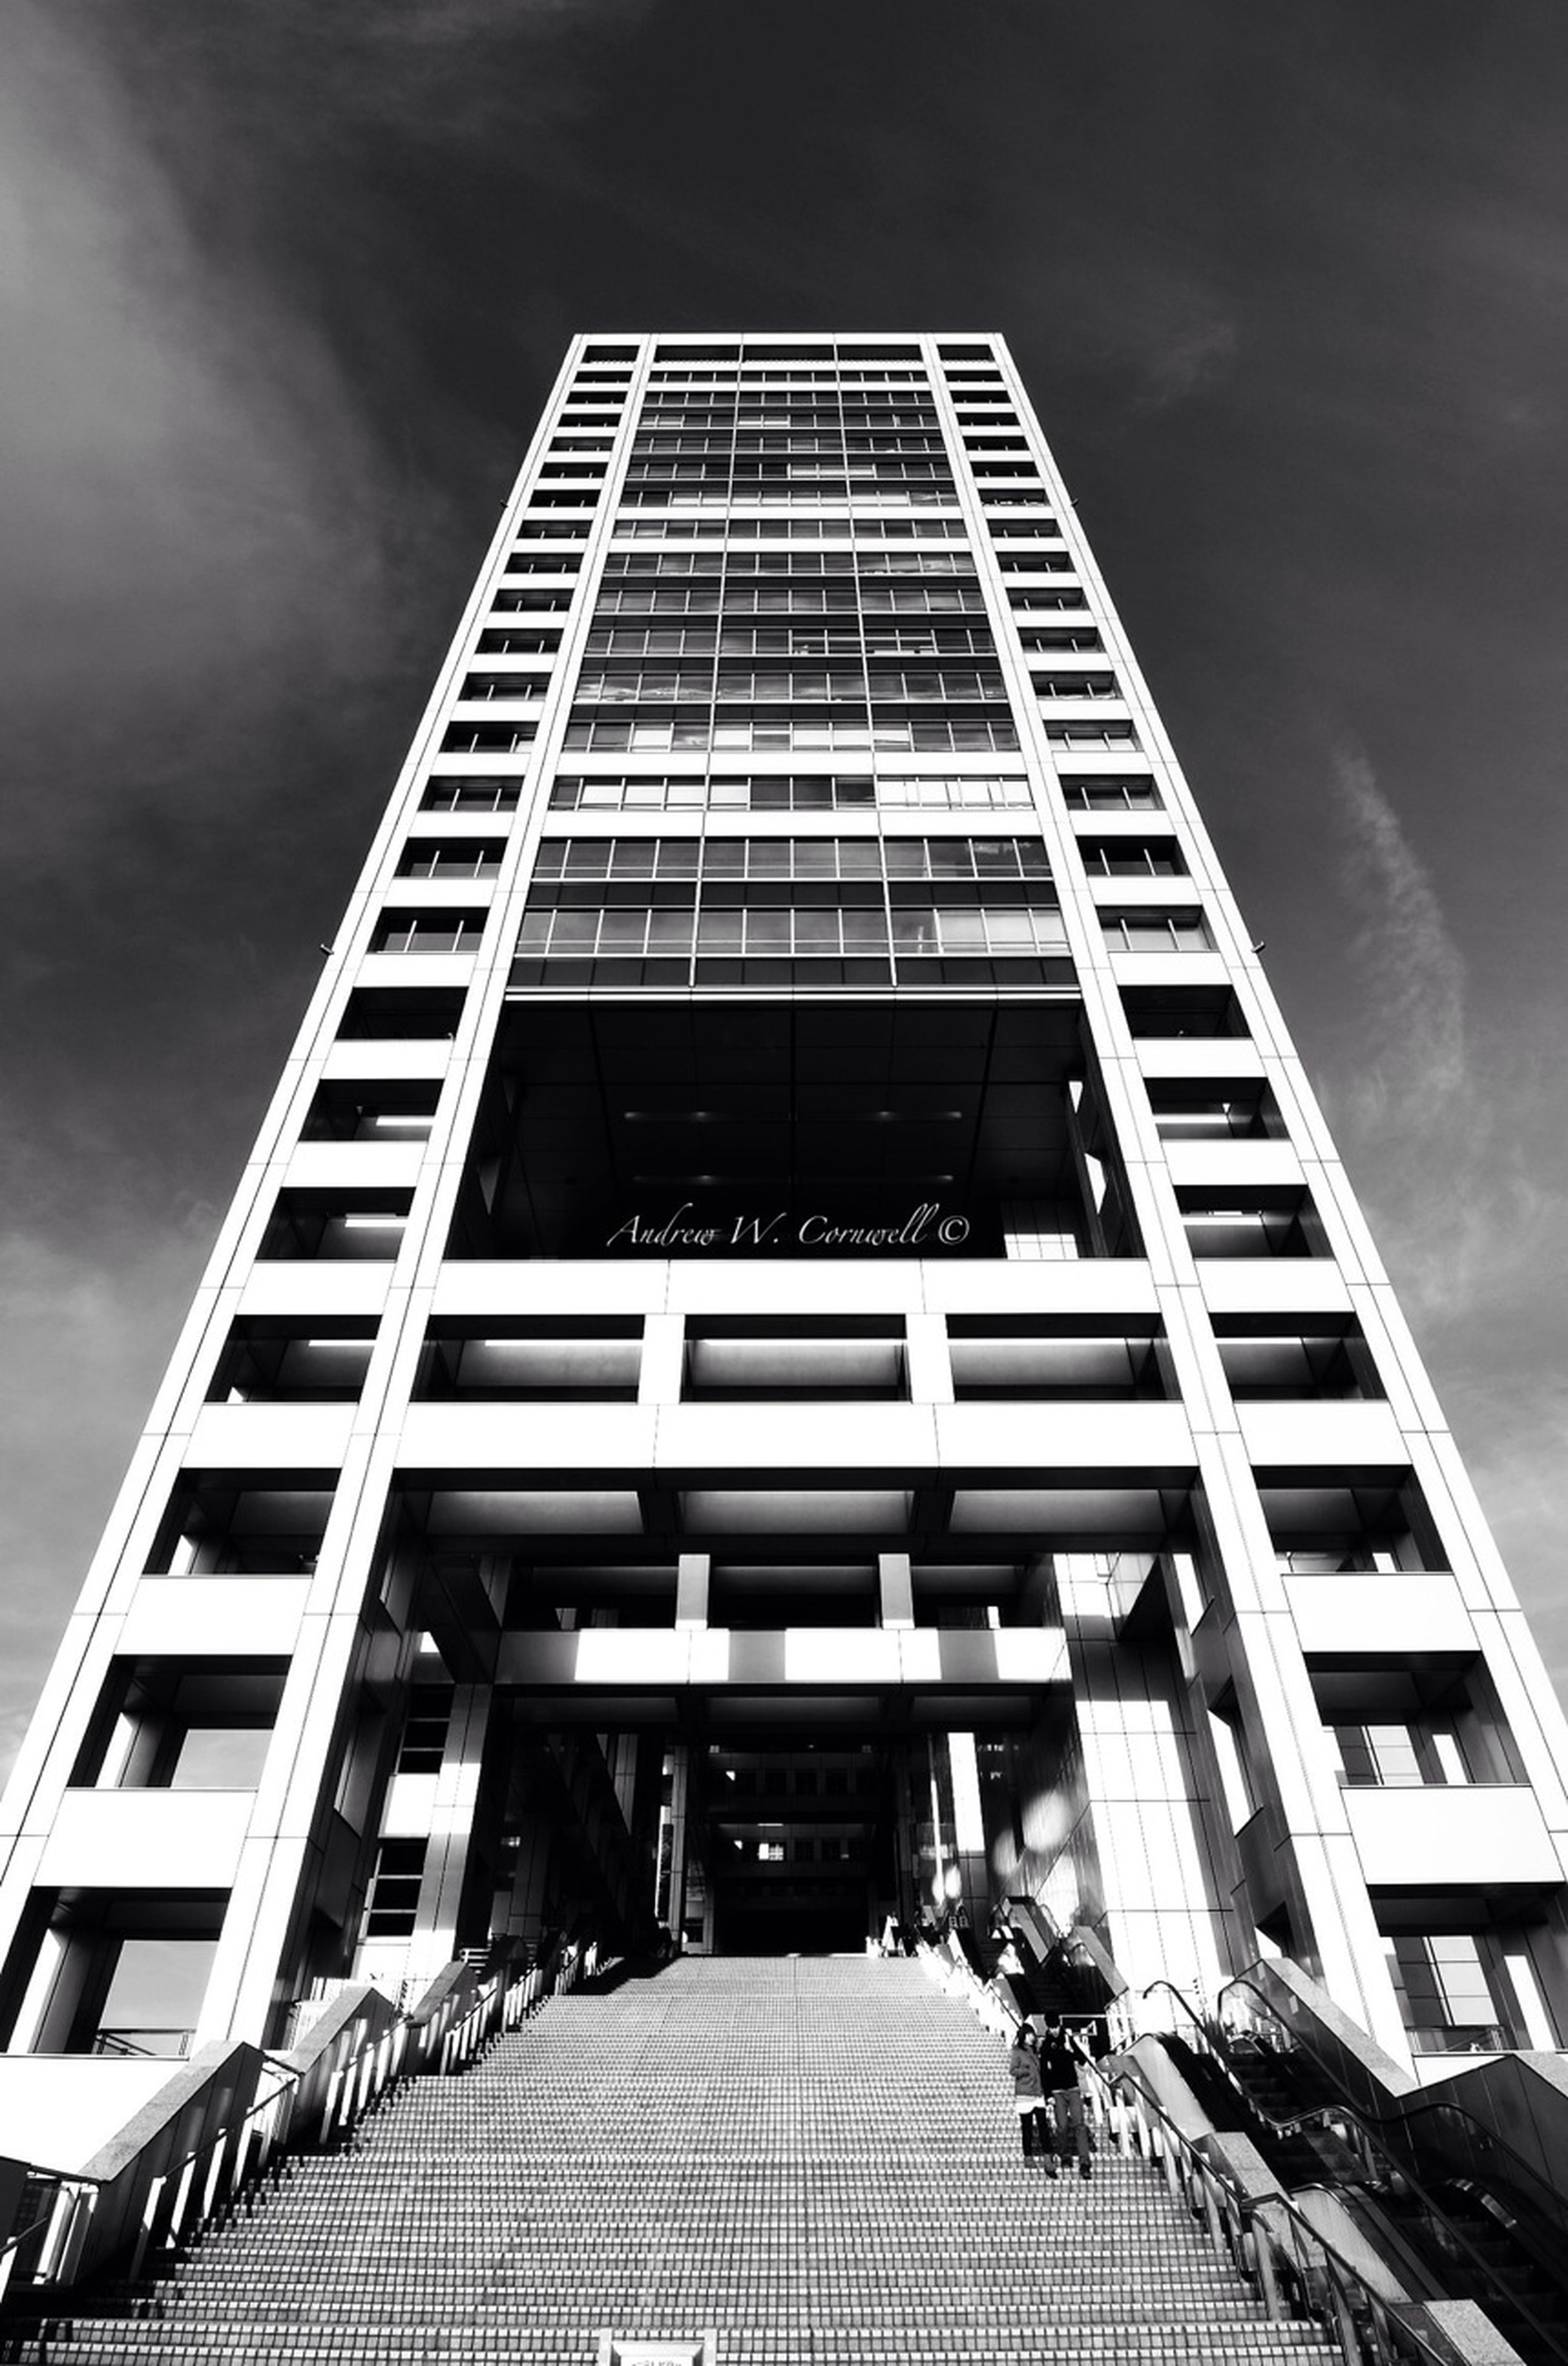 architecture, building exterior, built structure, low angle view, modern, office building, skyscraper, city, tall - high, sky, building, tower, tall, glass - material, diminishing perspective, day, reflection, outdoors, cloud - sky, window